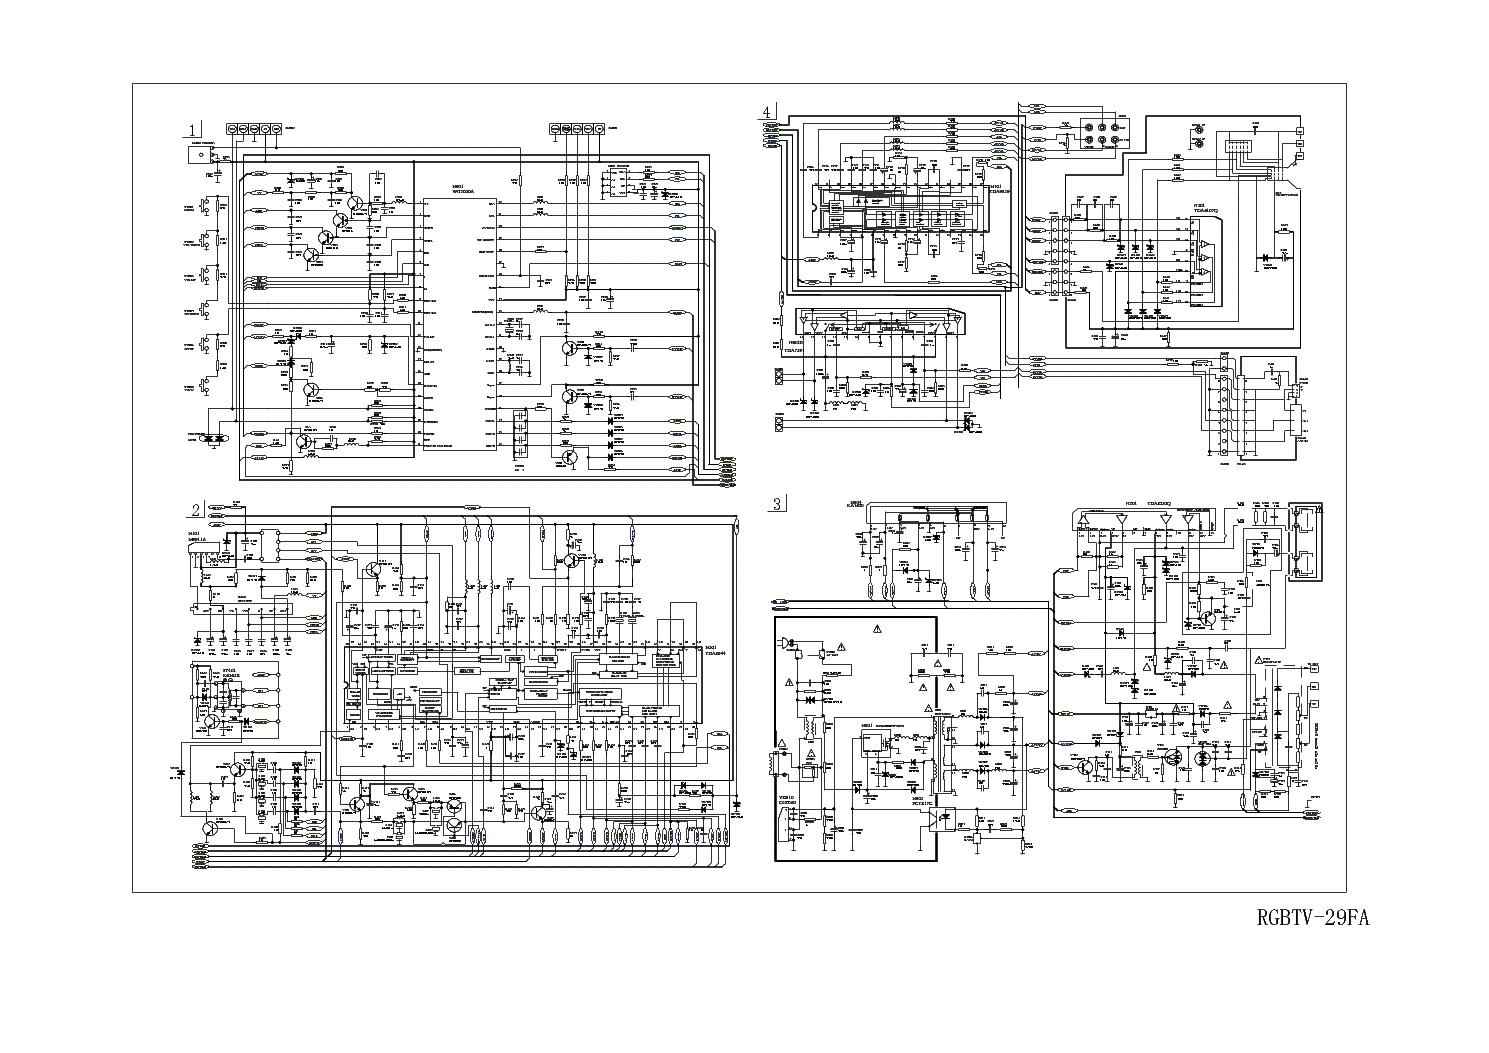 haier tv circuit board diagrams schematics pdf service. Black Bedroom Furniture Sets. Home Design Ideas